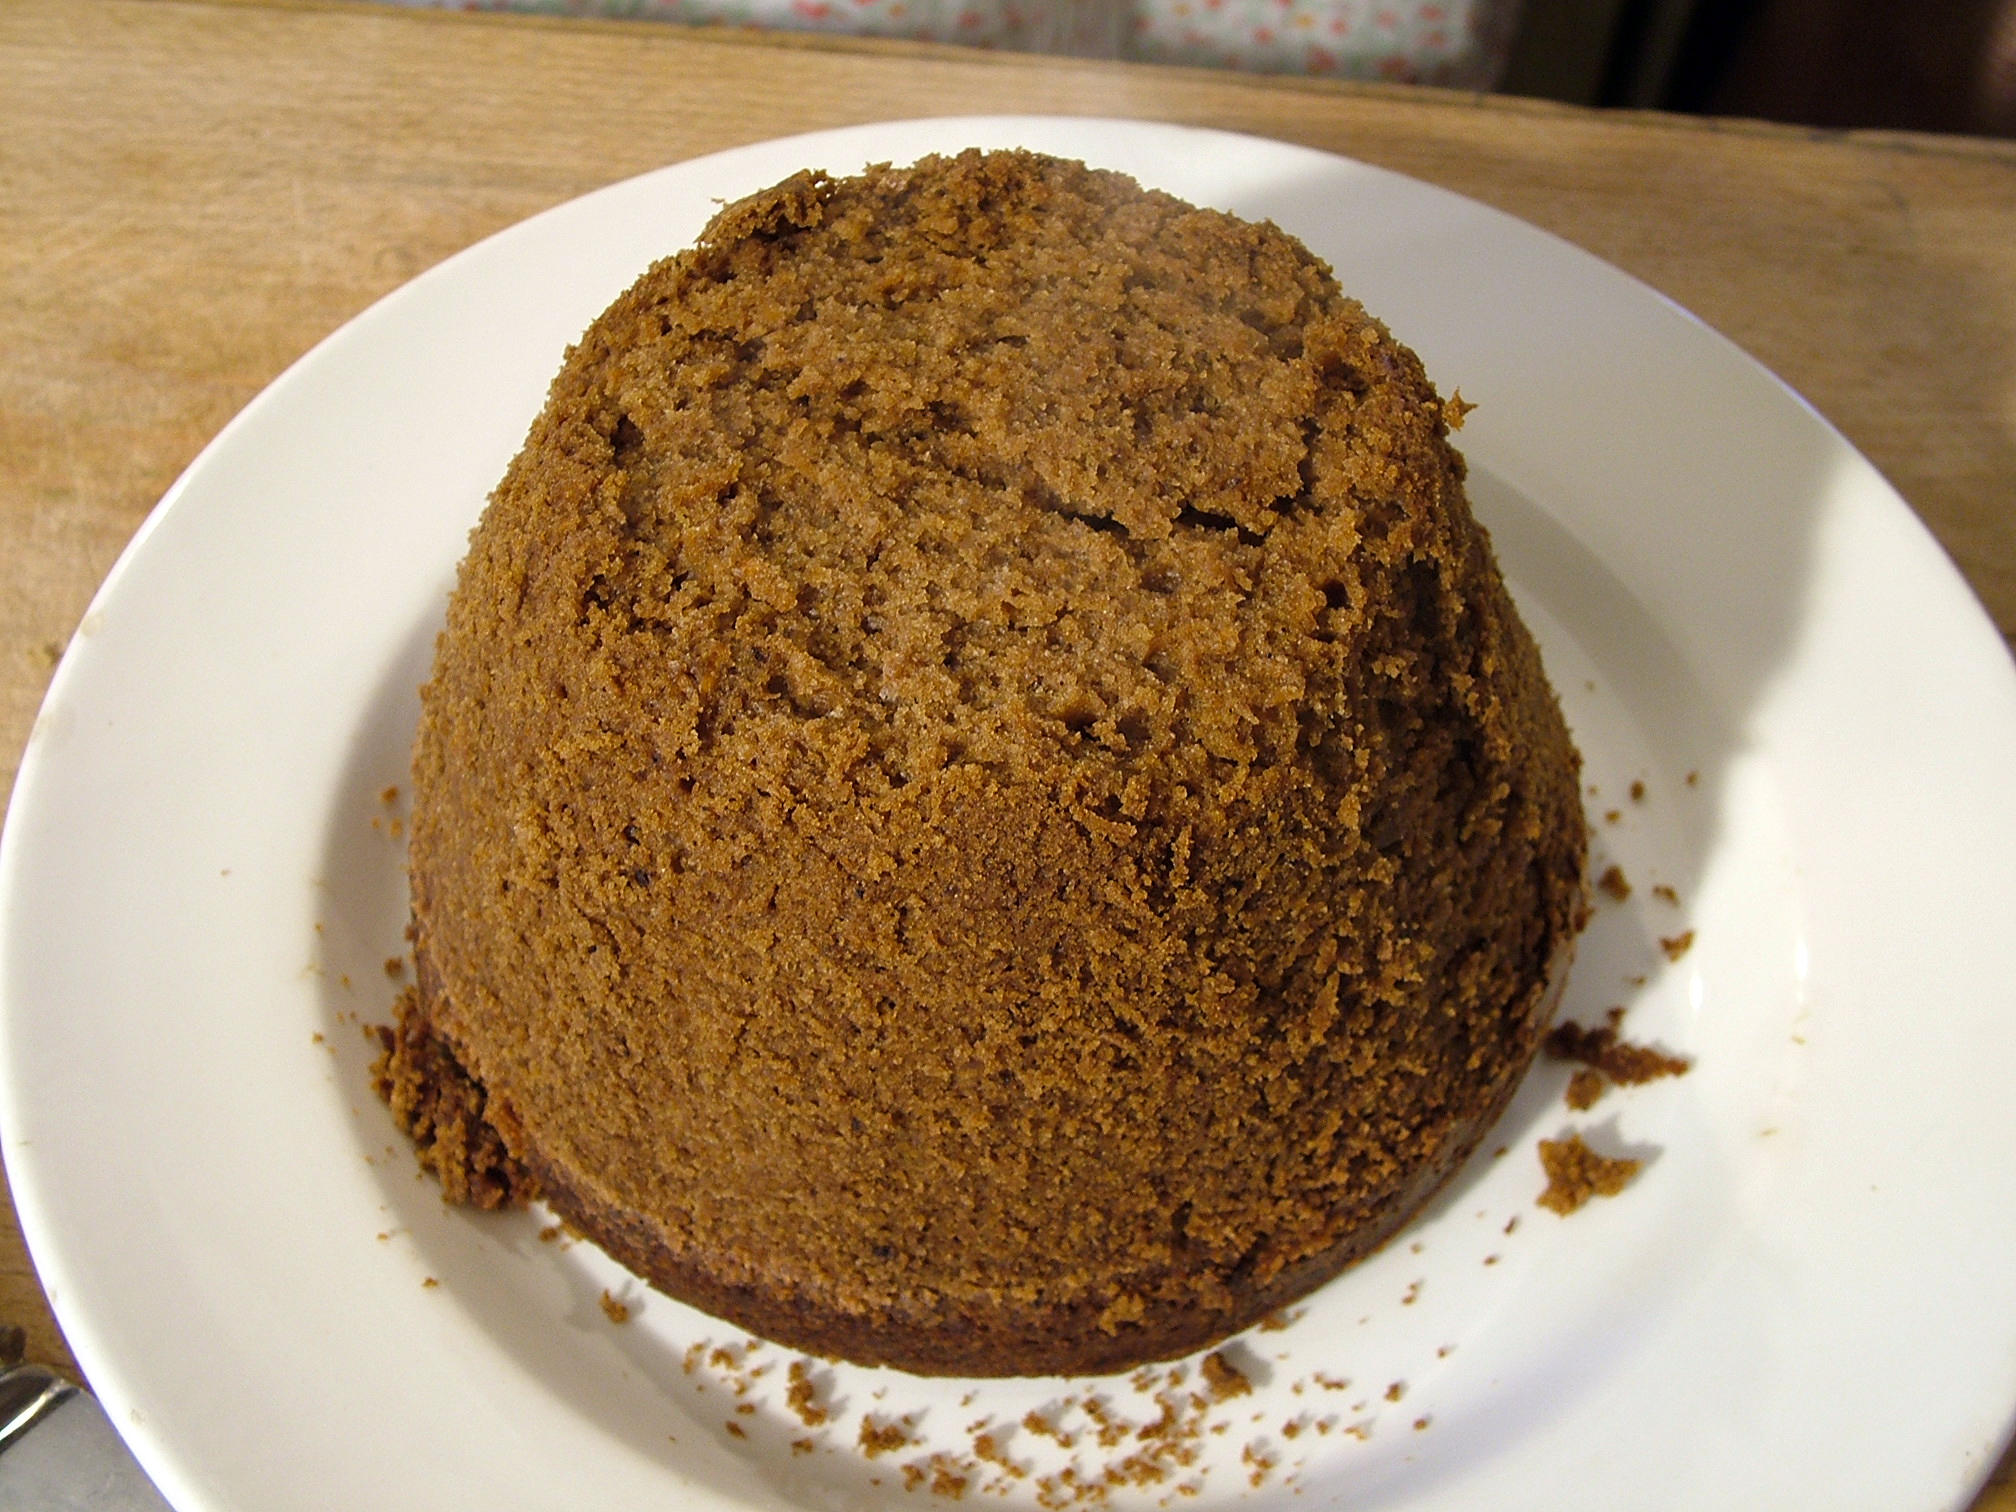 Steamed Chocolate Pudding.JPG: